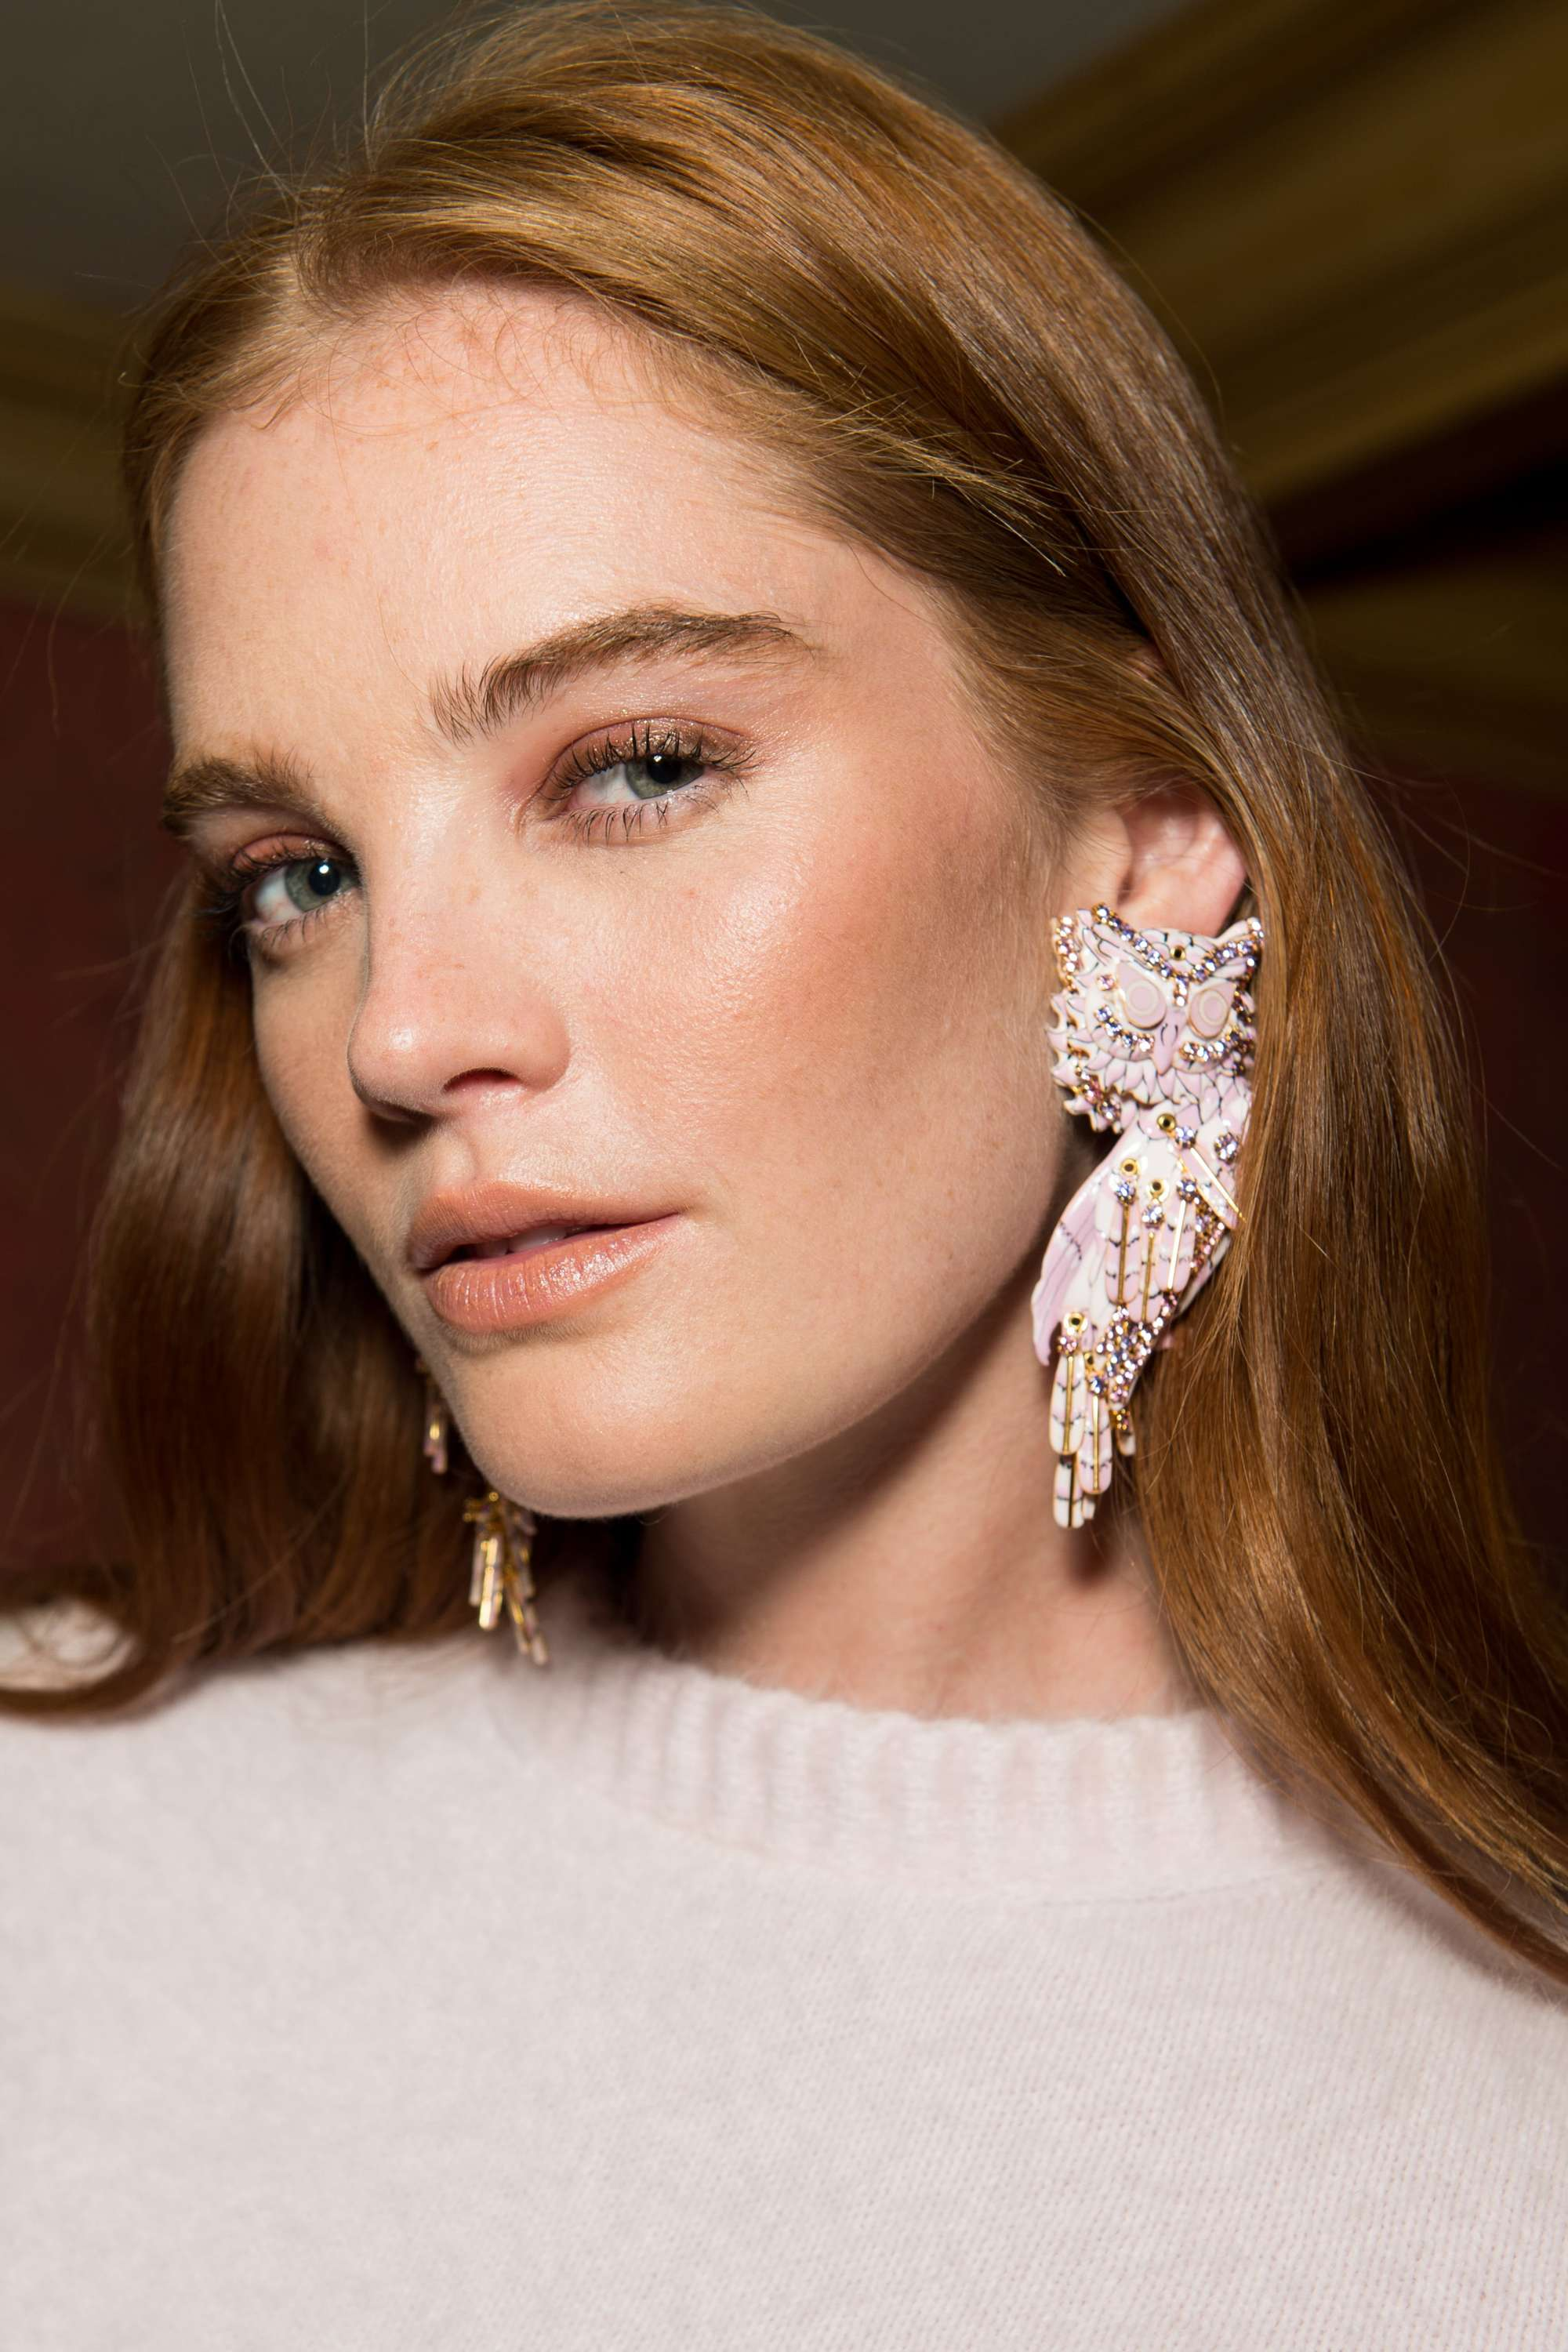 close up shot of model with shiny hair, wearing party makeup, earrings and white jumper